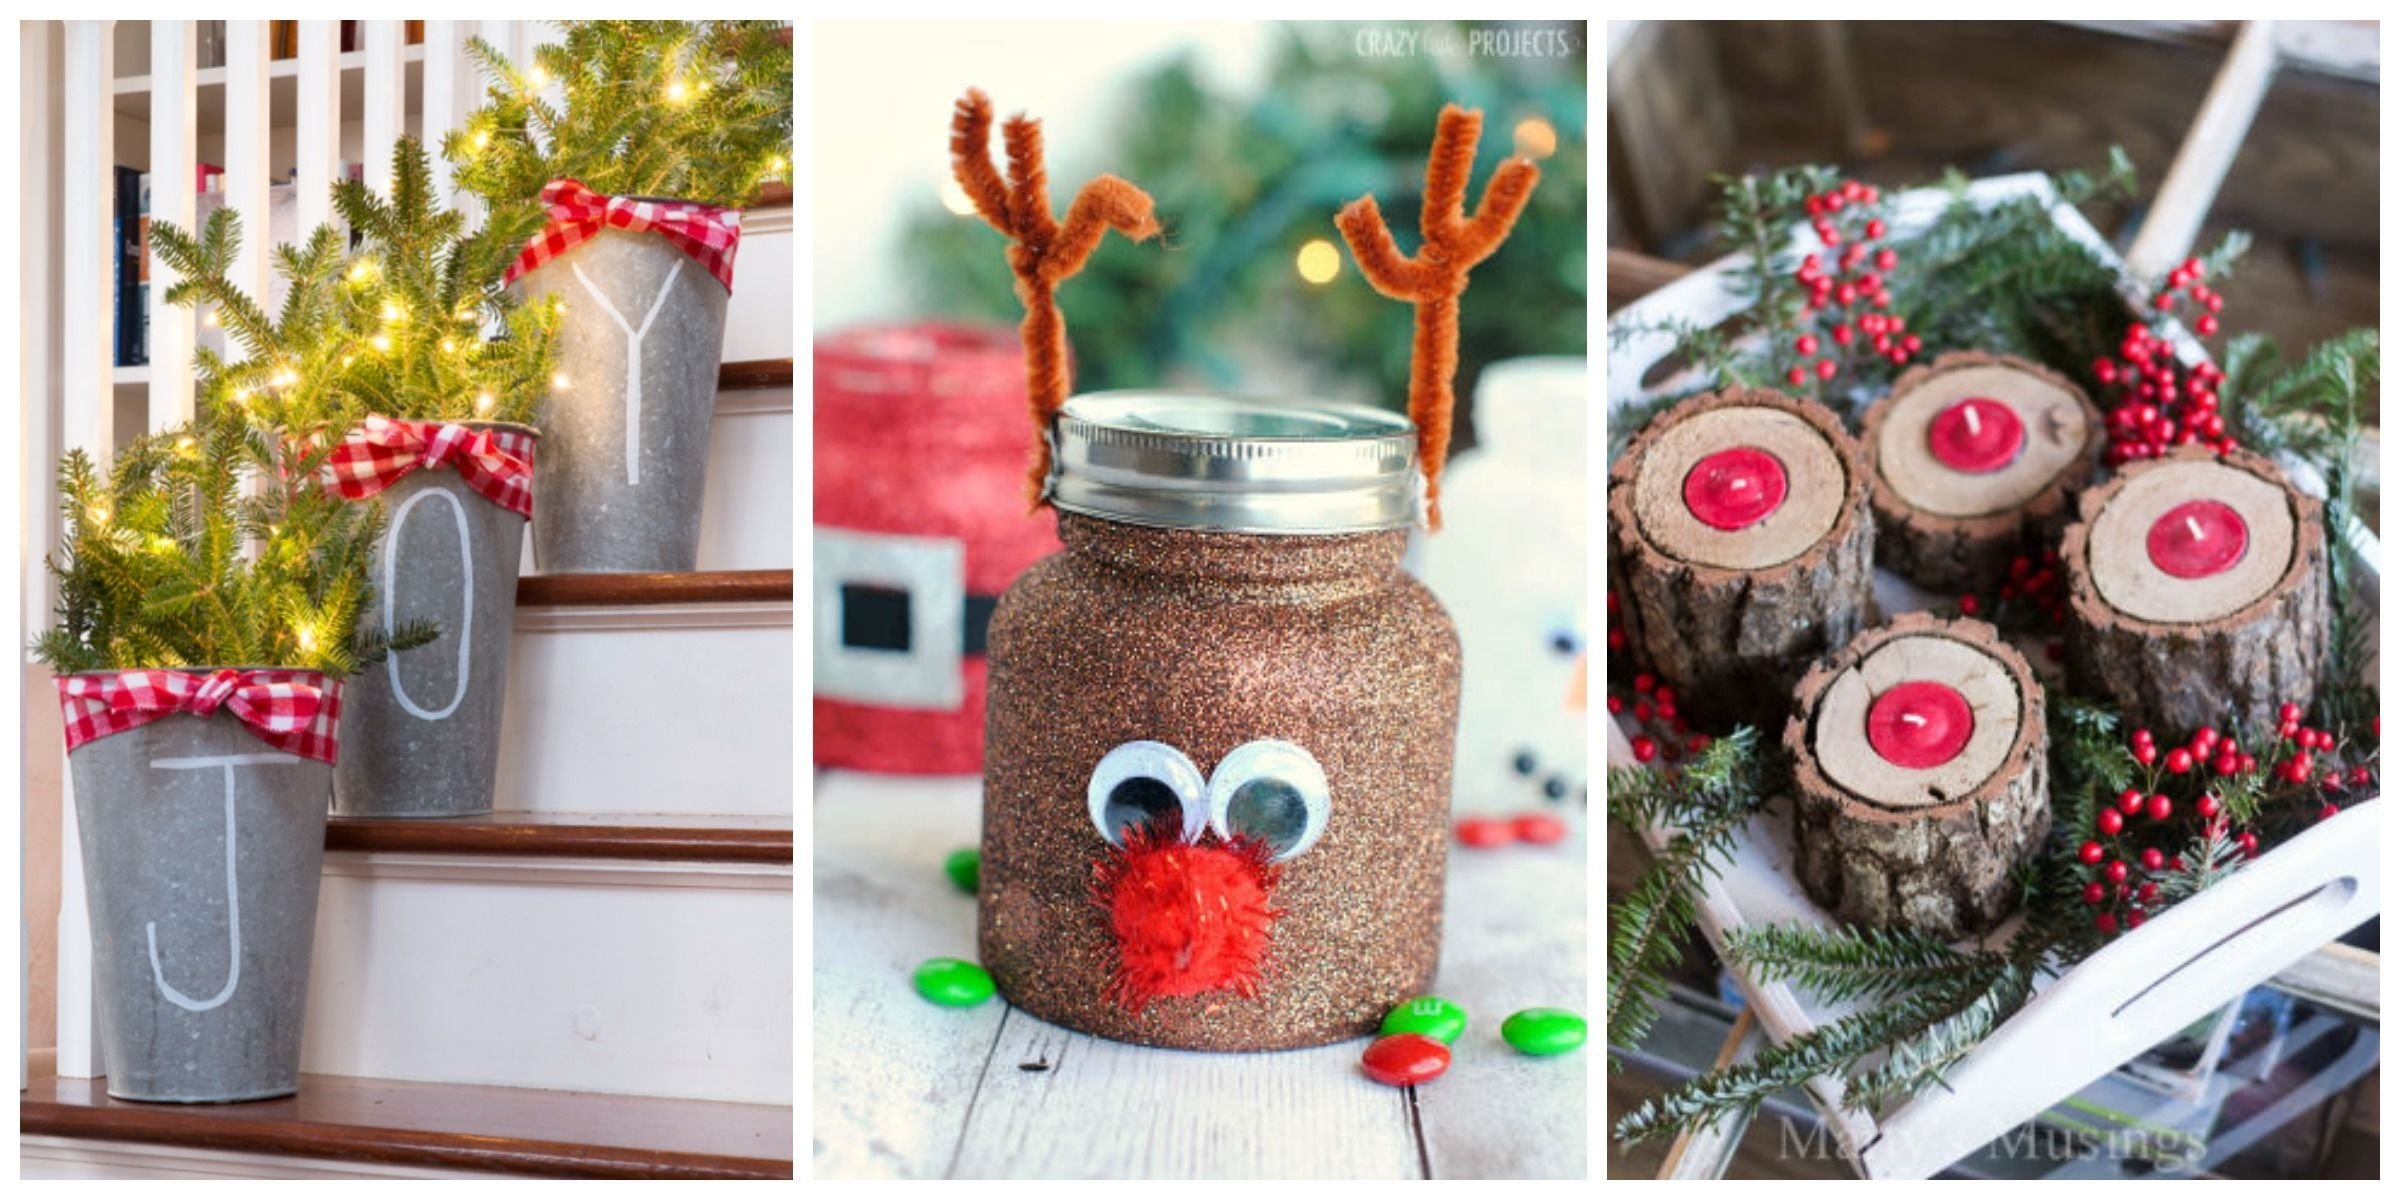 10 Fabulous Christmas Crafts Ideas For Adults 55 easy christmas crafts simple diy holiday craft ideas projects 1